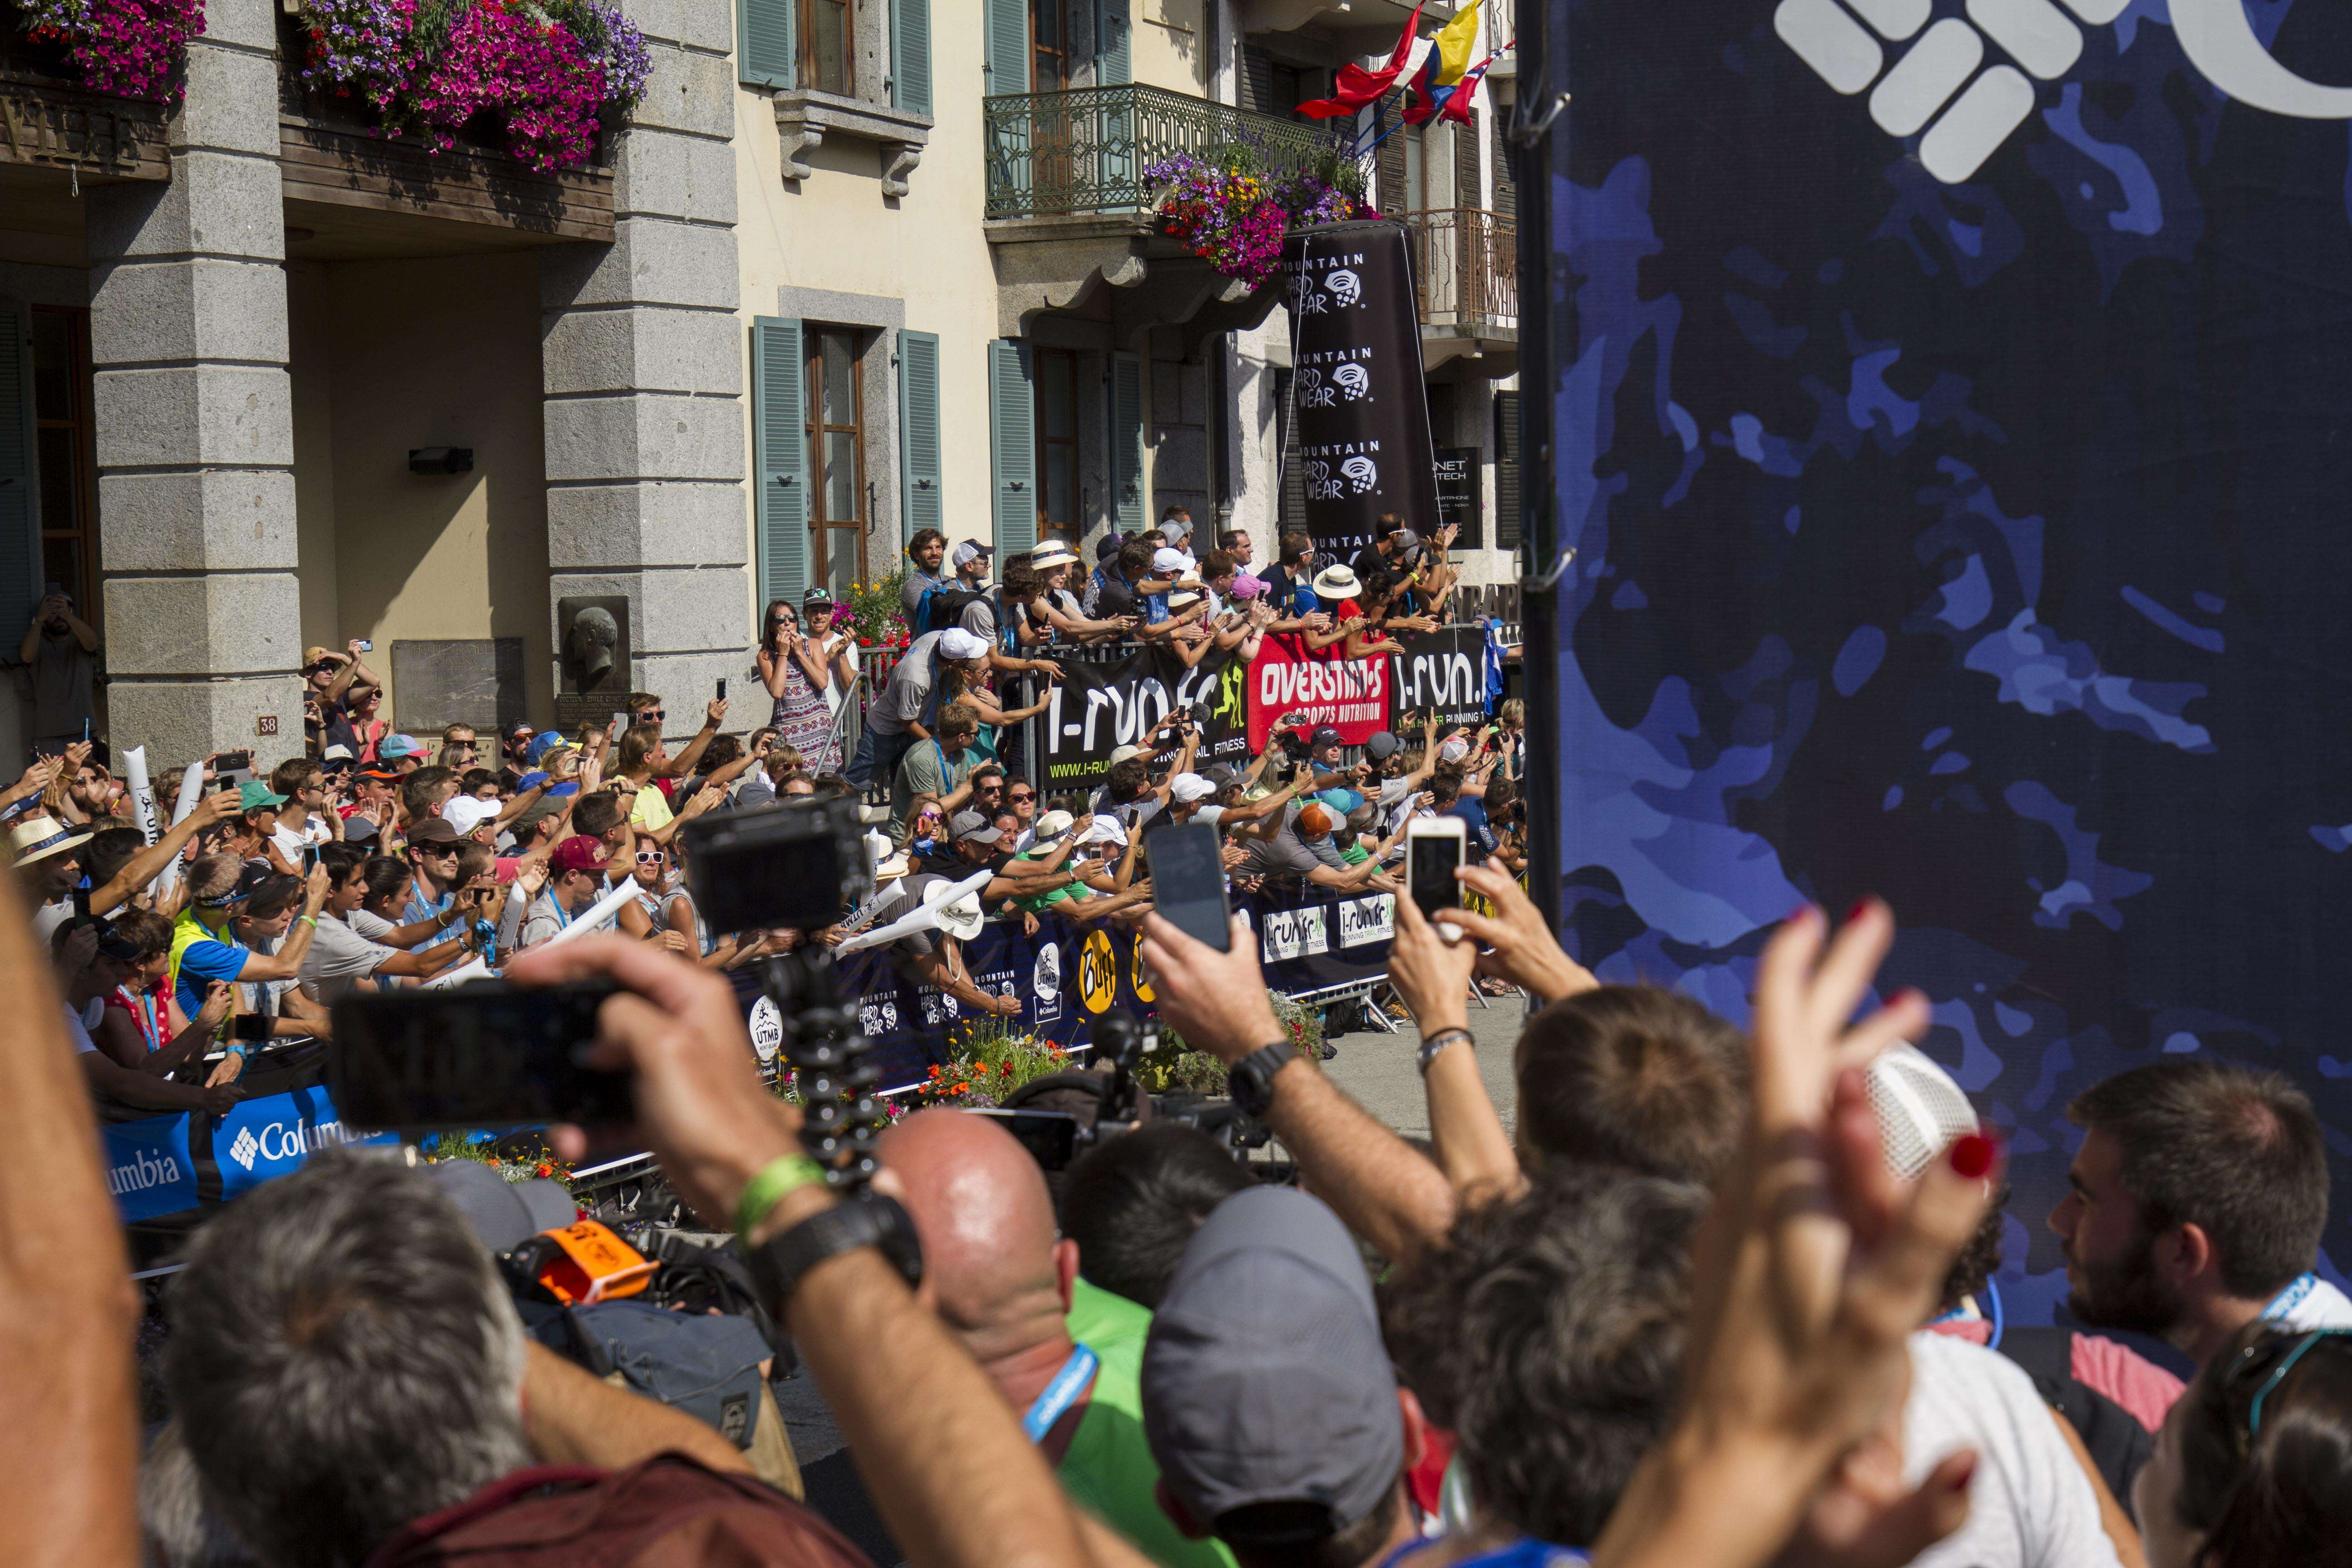 UTMB FINISH FIGHTING FOR SHOTS. Photos by James Mackeddie